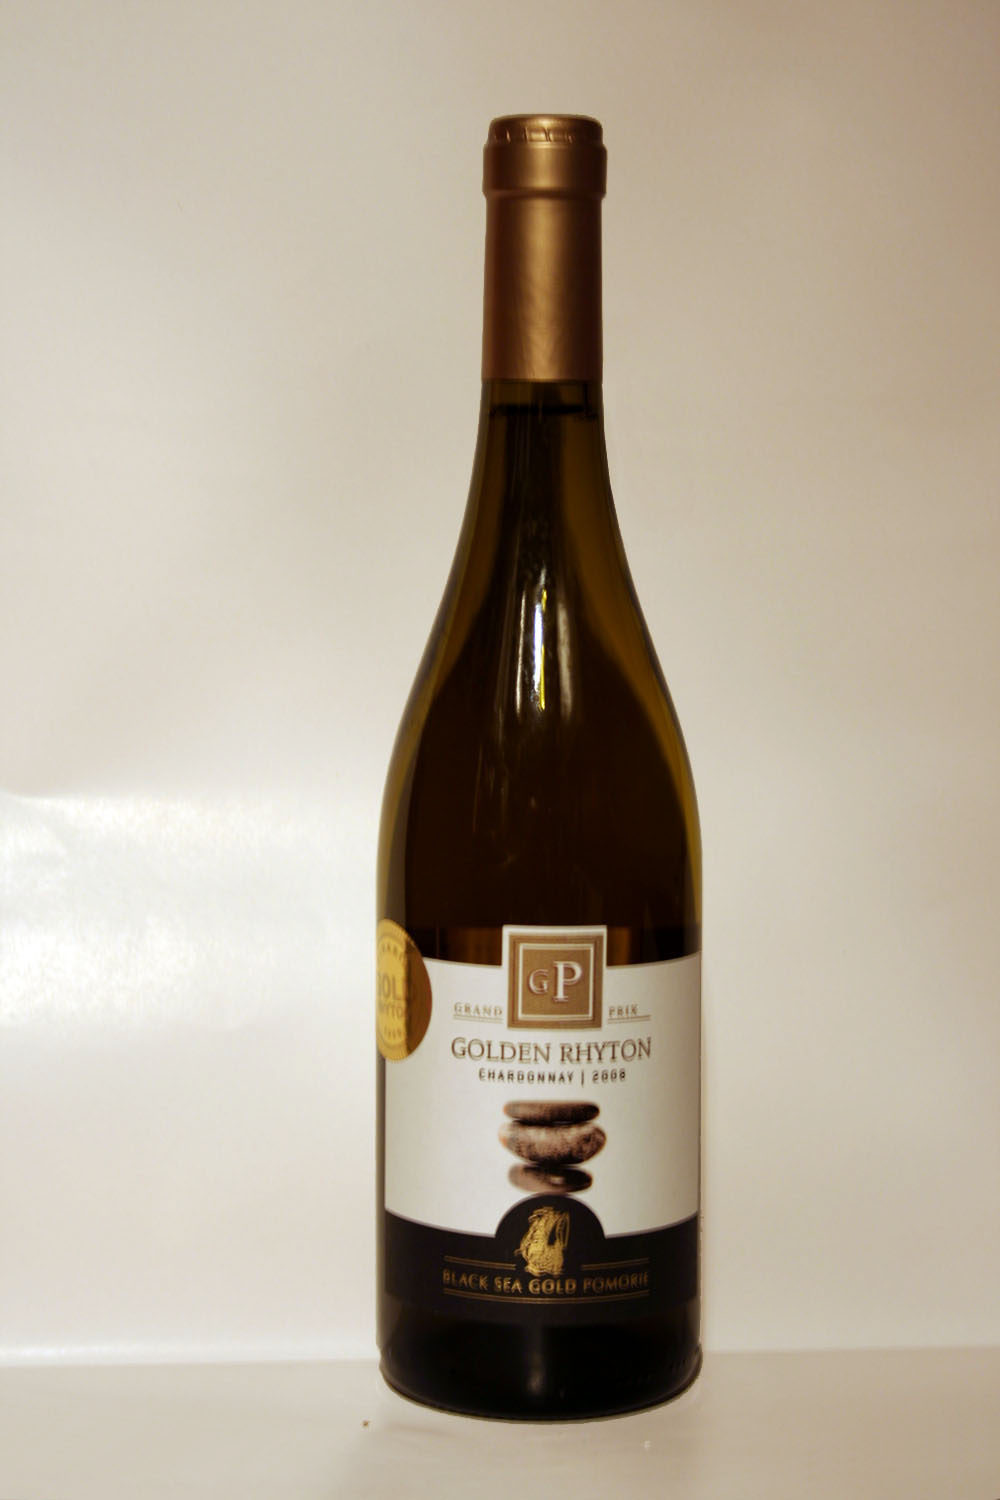 GP Golden Rhyton Chardonnay 2008